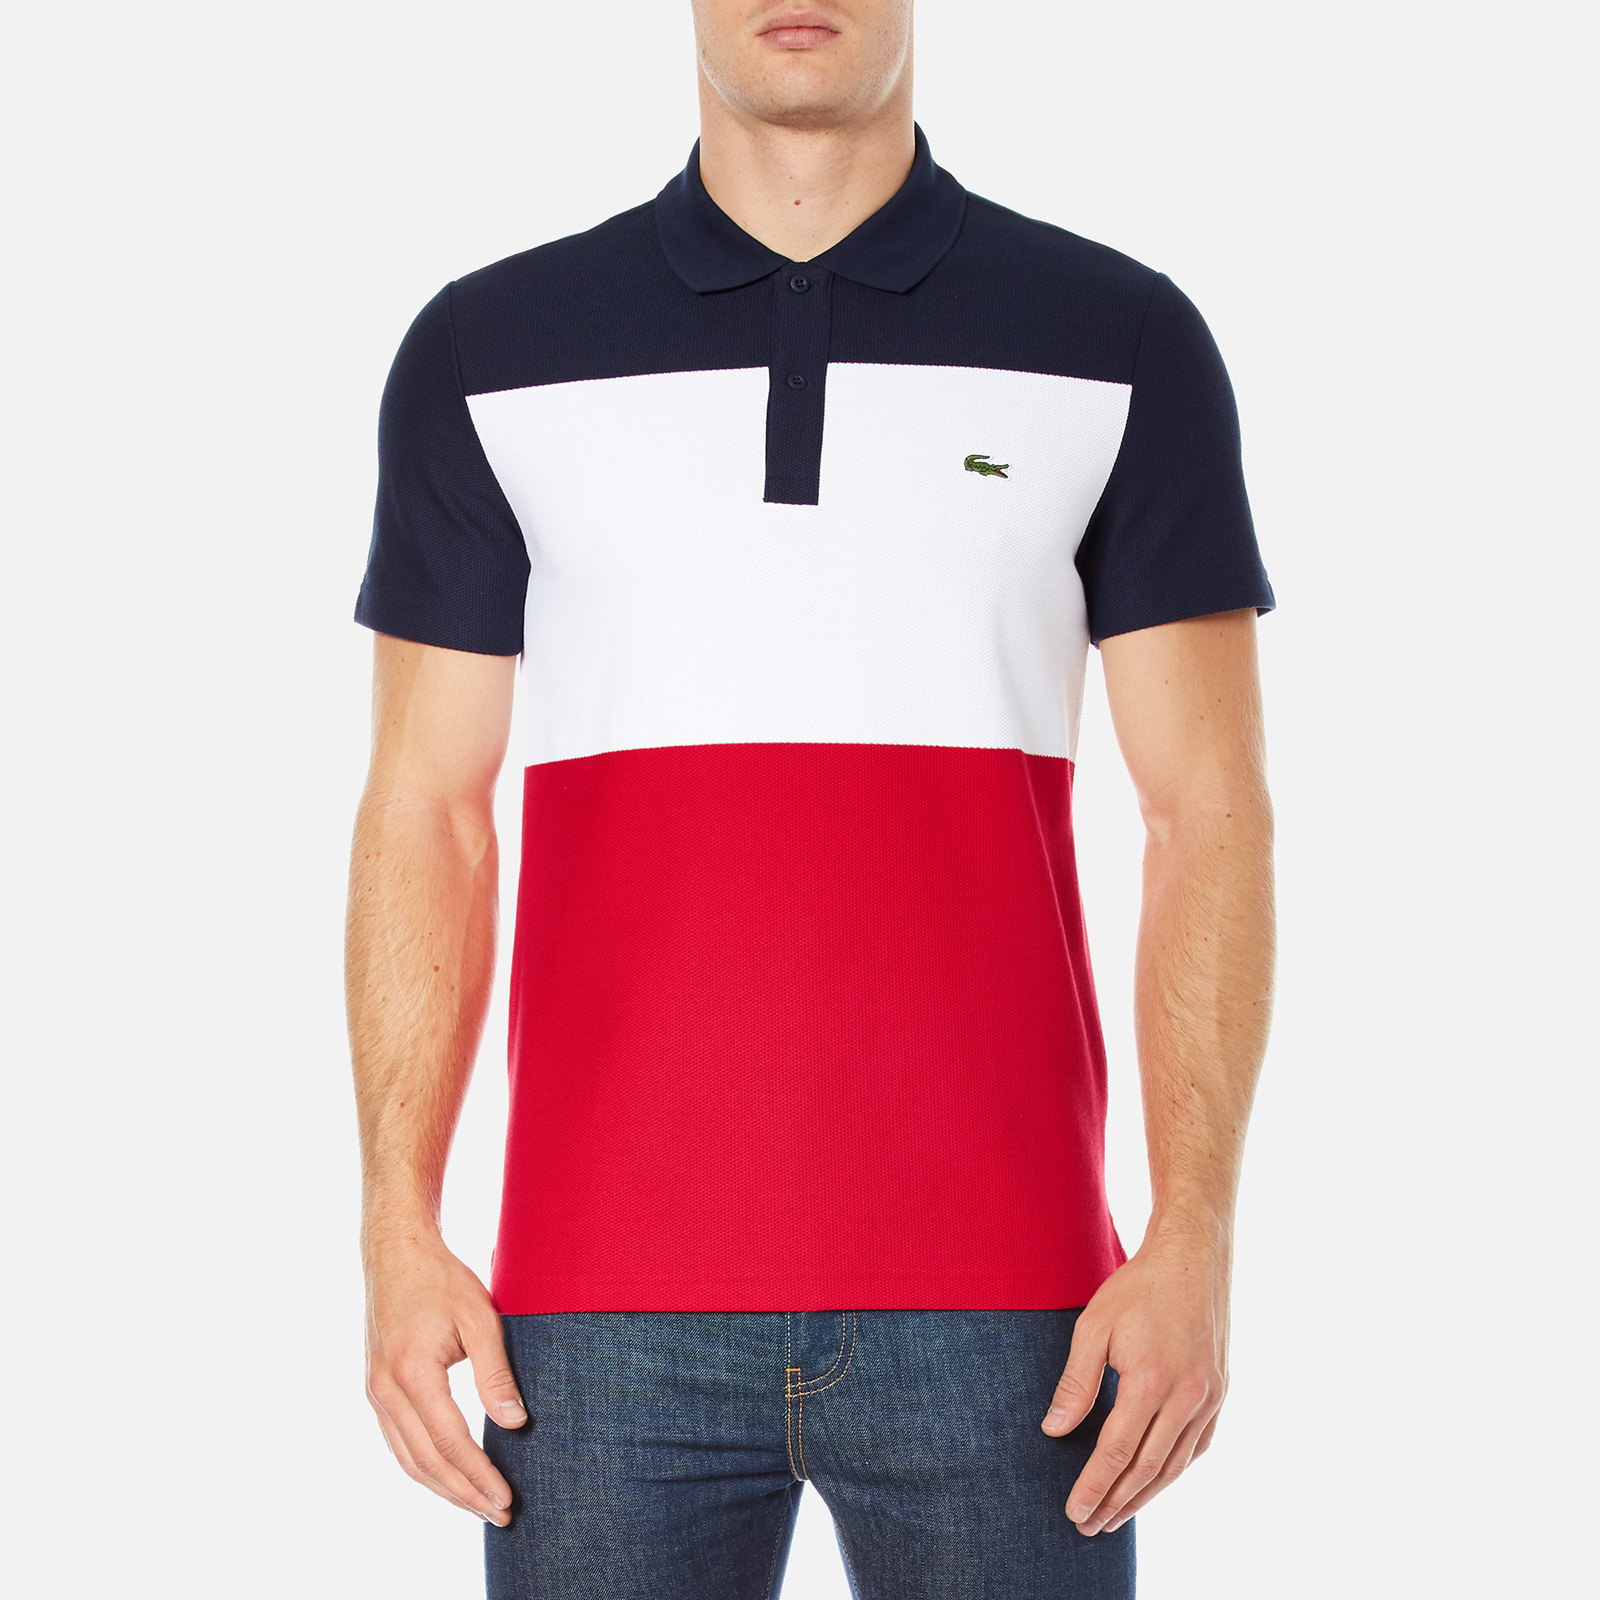 149afa55a5c15 Lacoste Men s Short Sleeve Bold Stripe Polo Shirt - Navy Blue White Red -  Free UK Delivery over £50